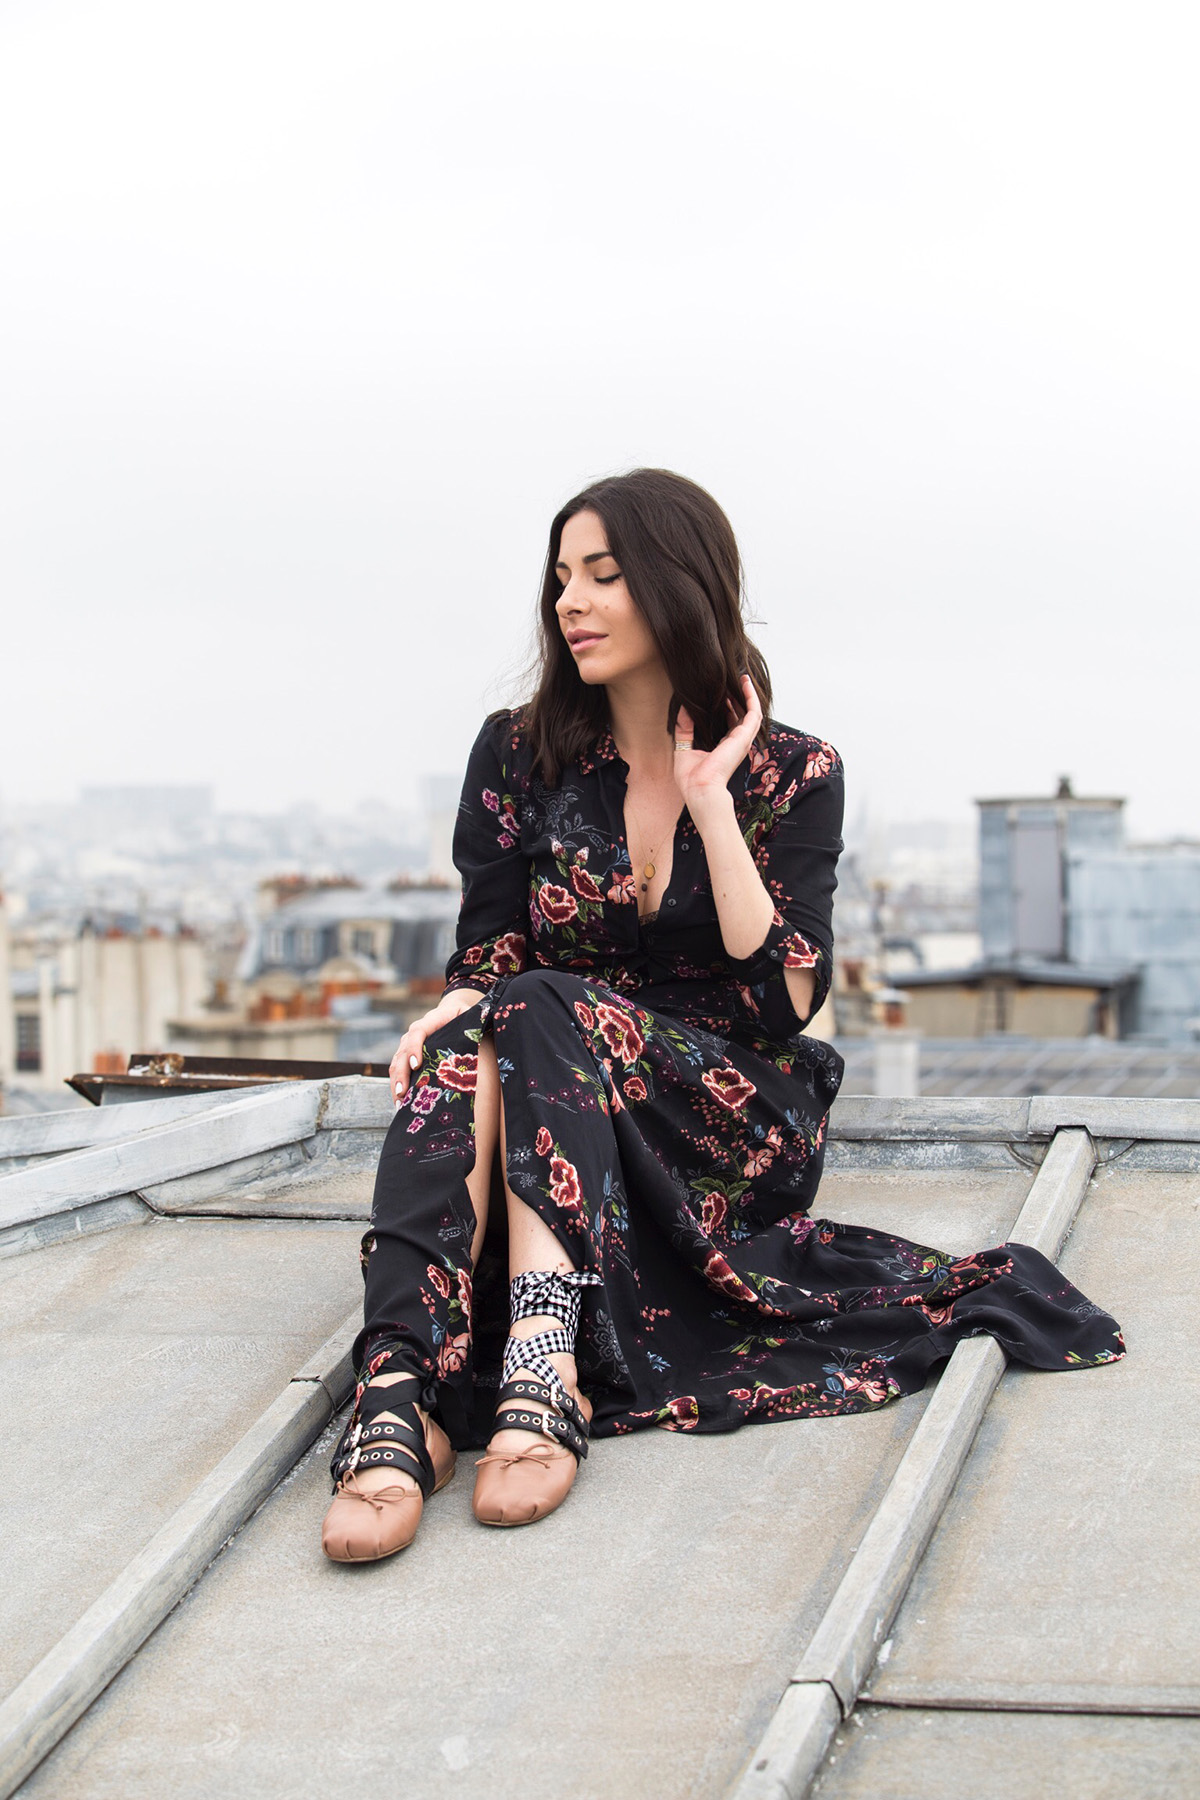 Stella Asteria Fashion & Lifestyle Blogger wearing Miu Miu ballerinas & floral dress